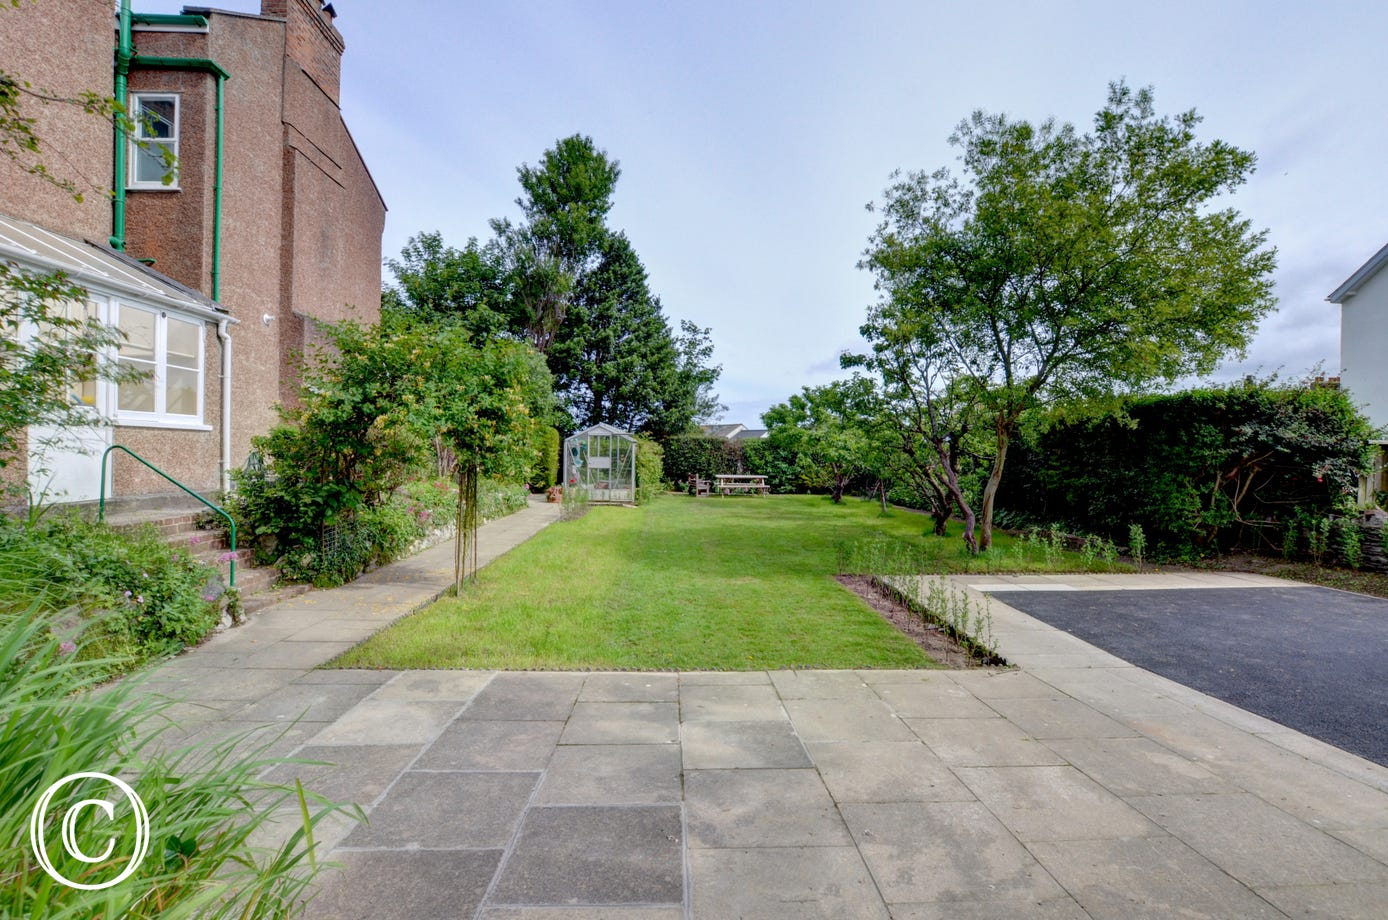 Spacious garden and parking area